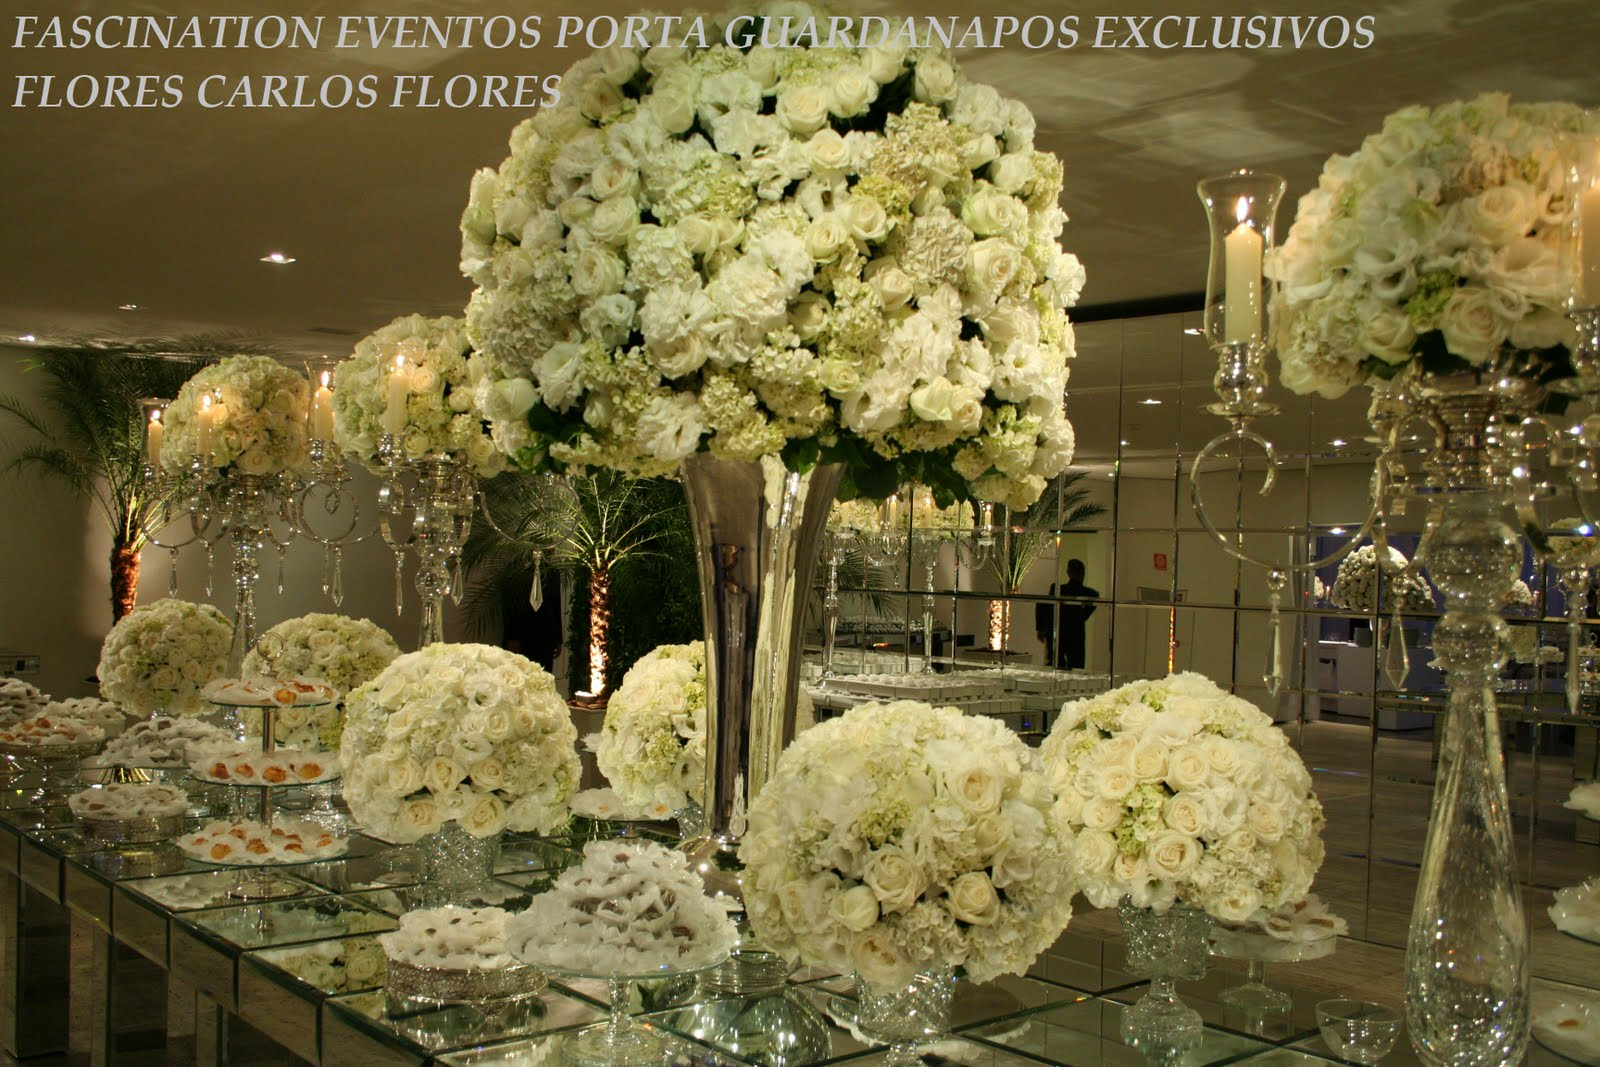 Porta Guardanapos Exclusivos Hort Ncias Fascination Eventos